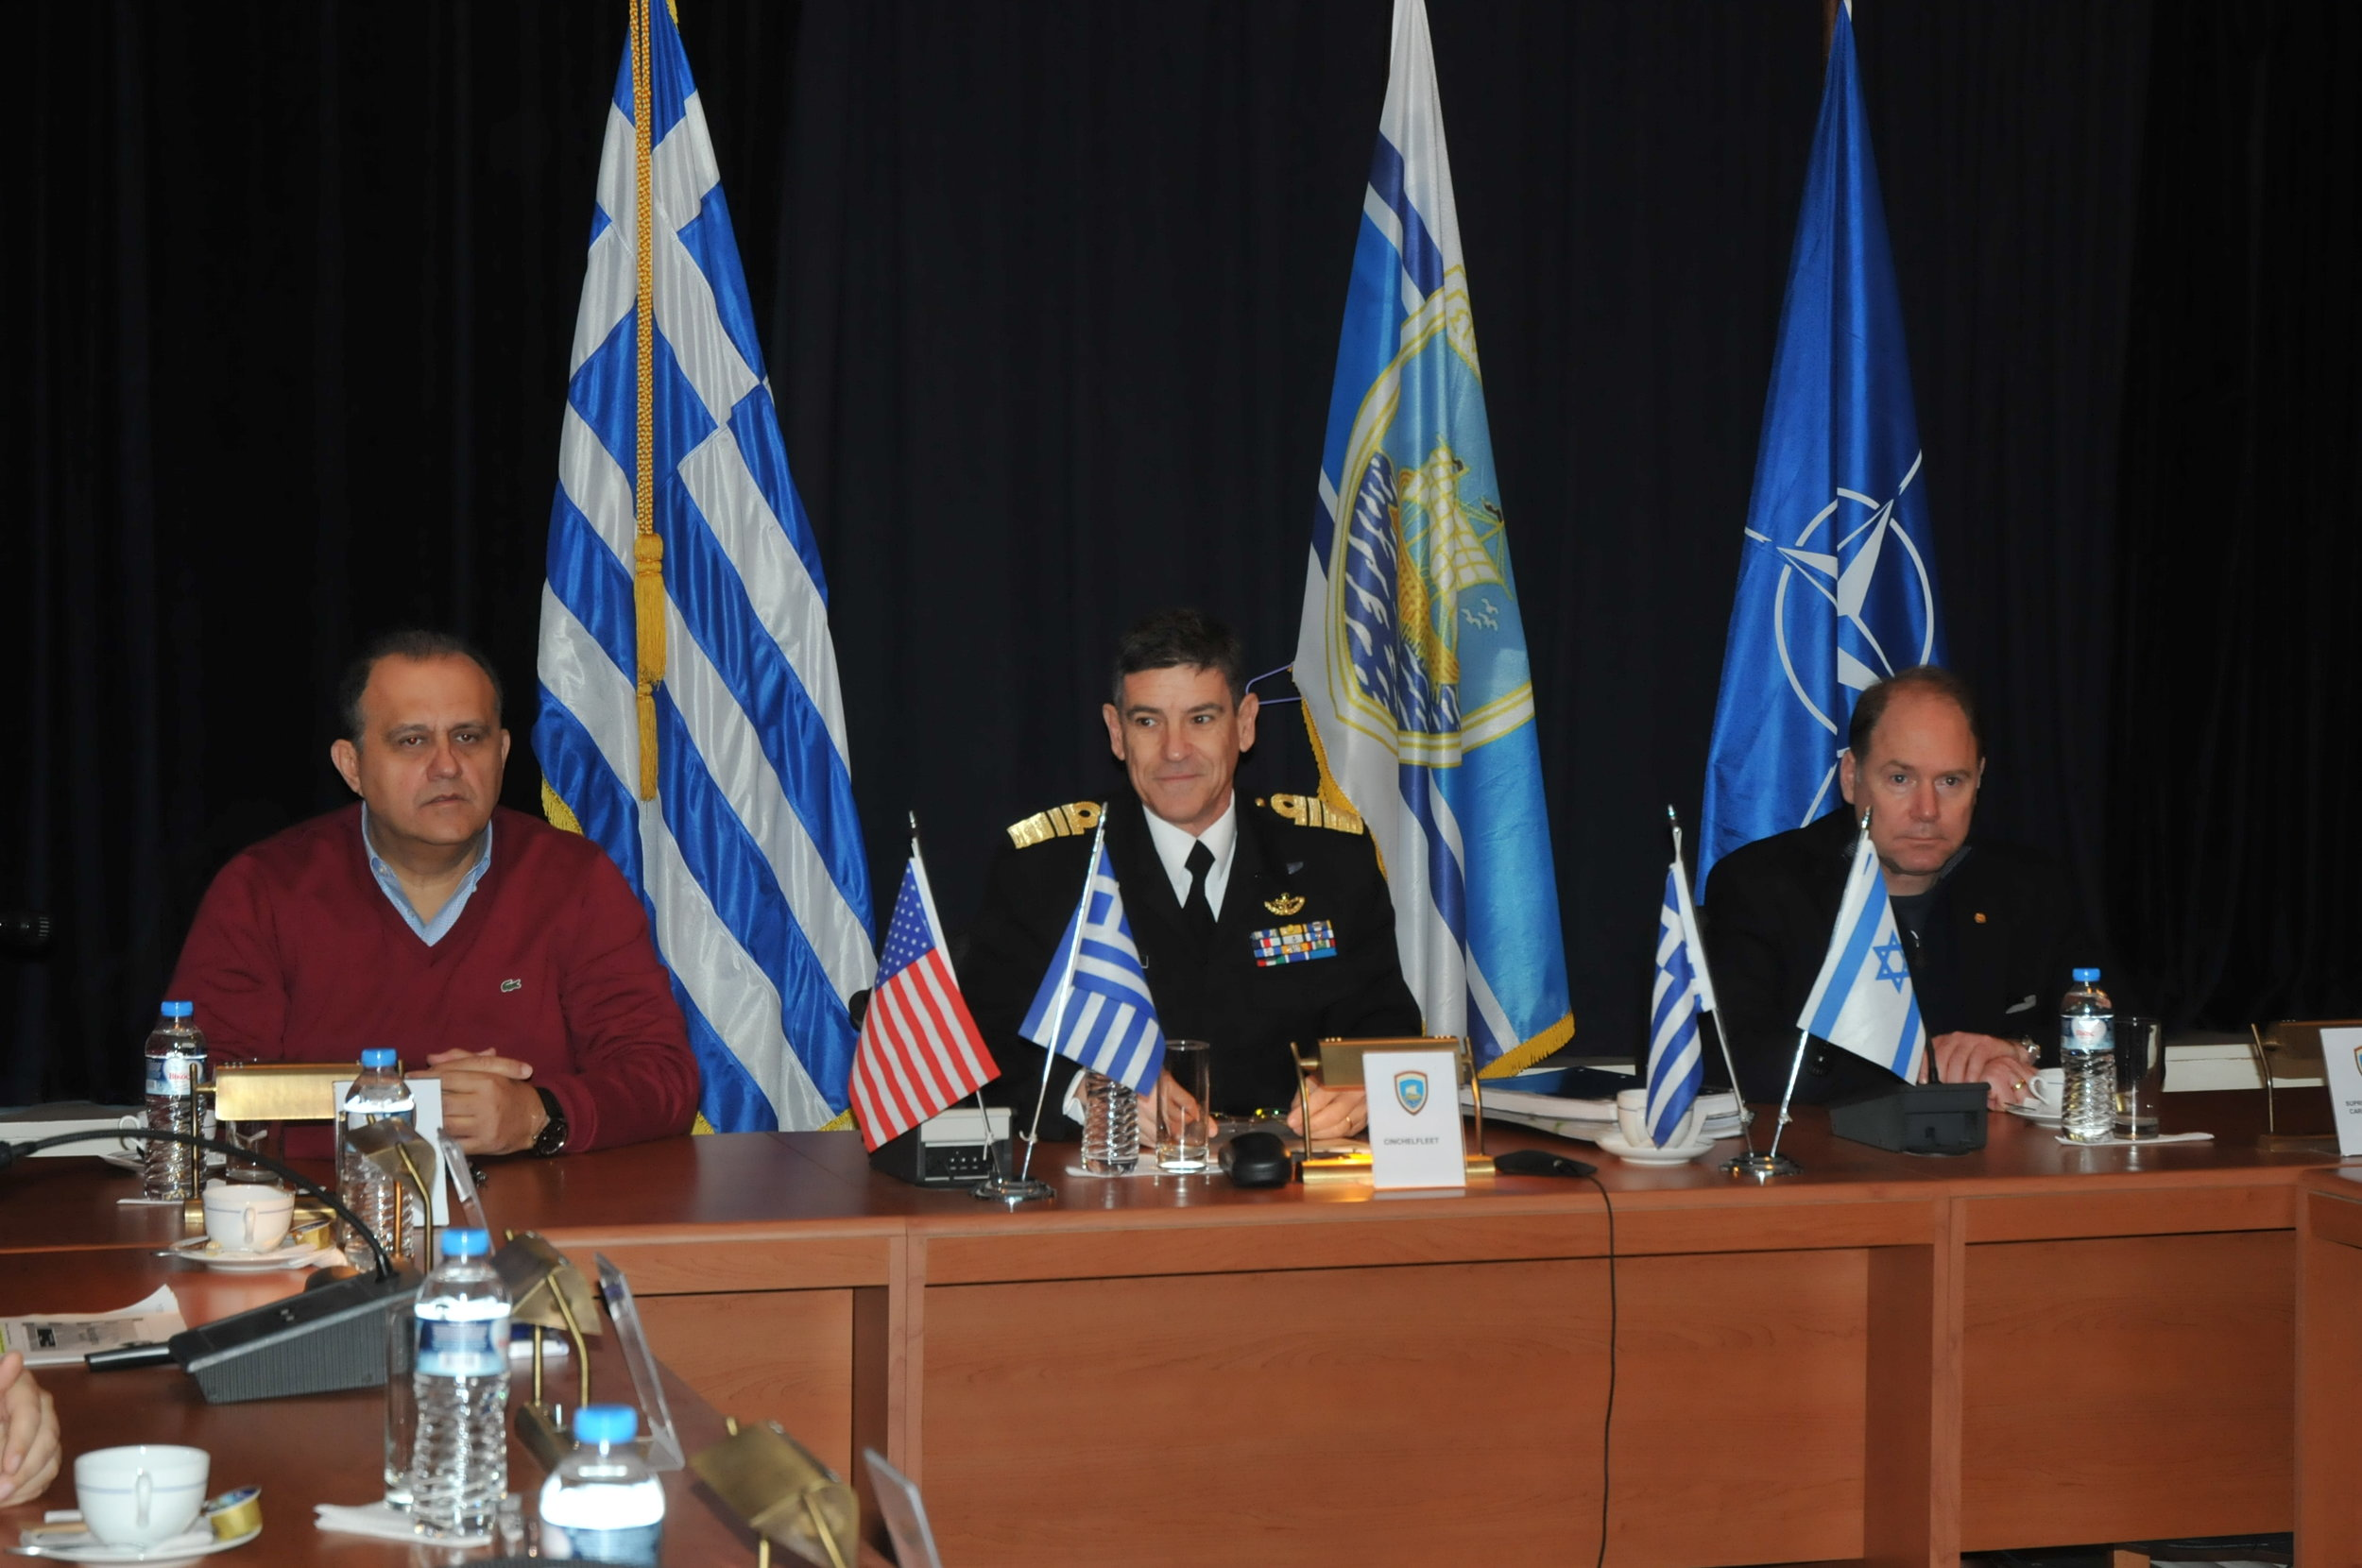 (L-R) Nick Larigakis; Vice Admiral Ioannis Pvalopoulos, Commander in Chief of the Greek Naval Fleet; Carl R. Hollister at Salamis Naval Base recieving a Naval Defense briefing.